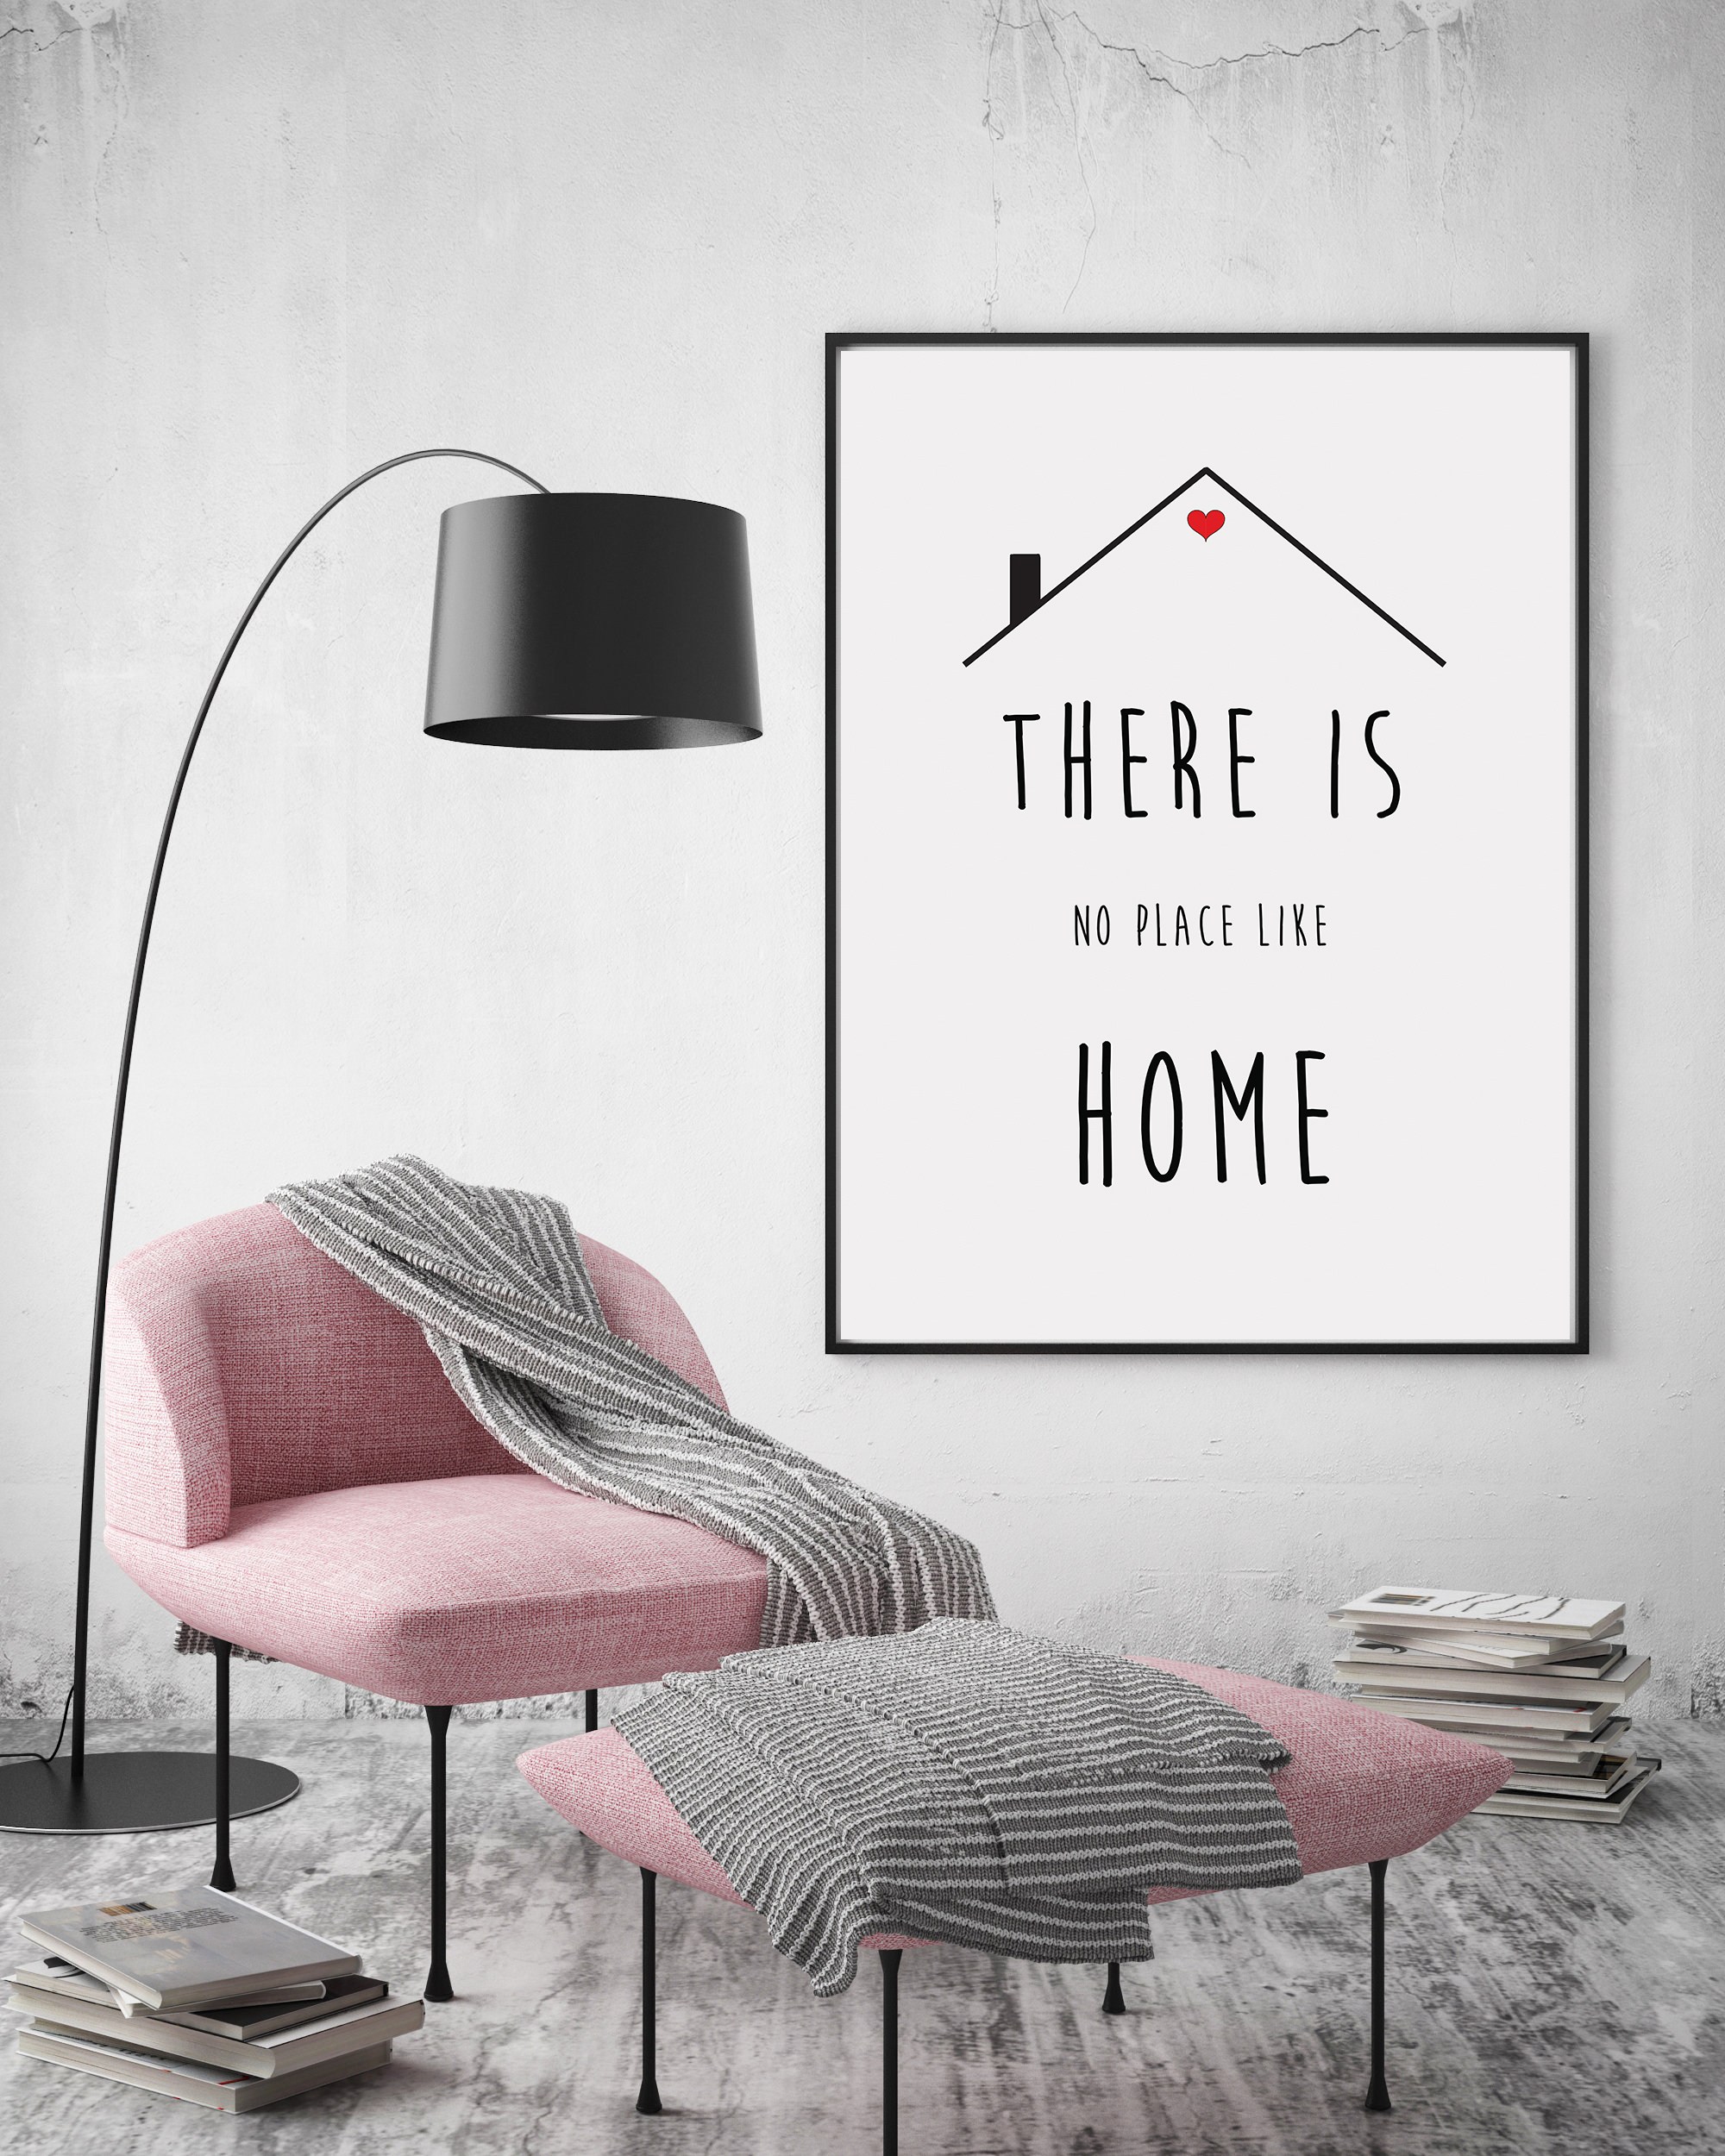 Minimalist Wall Art Quotes, Printable Home Quotes Poster example image 4